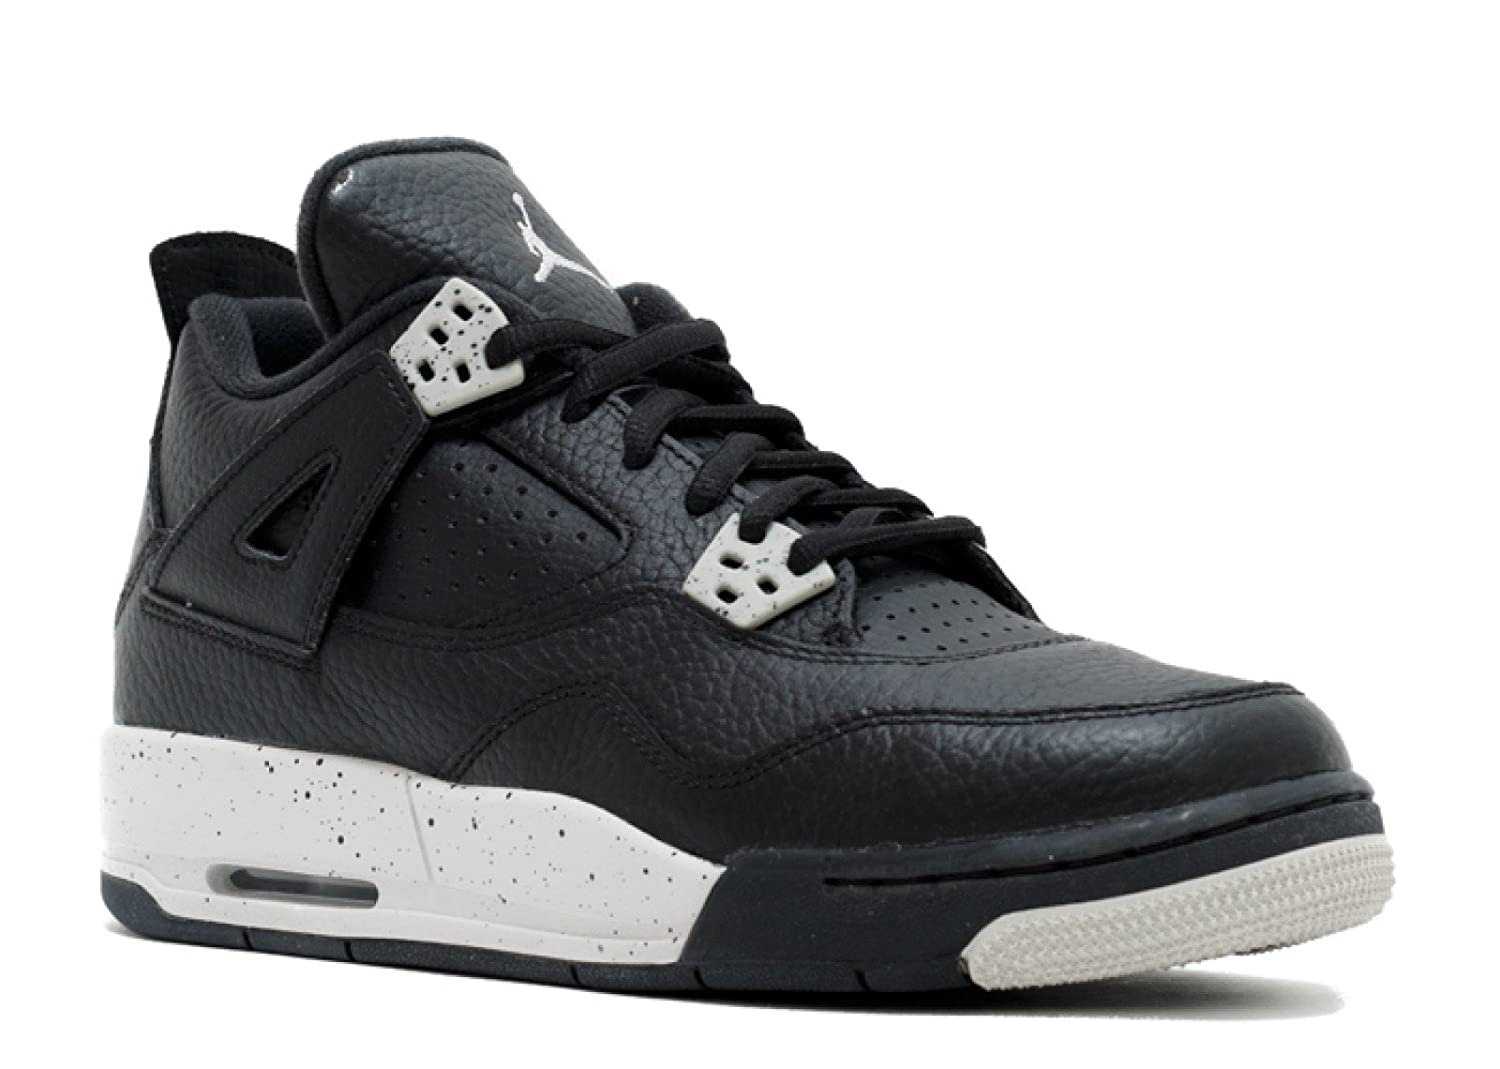 Black, tech grey-black Nike Jordan Kids Air Jordan 4 Retro Bg Basketball shoes